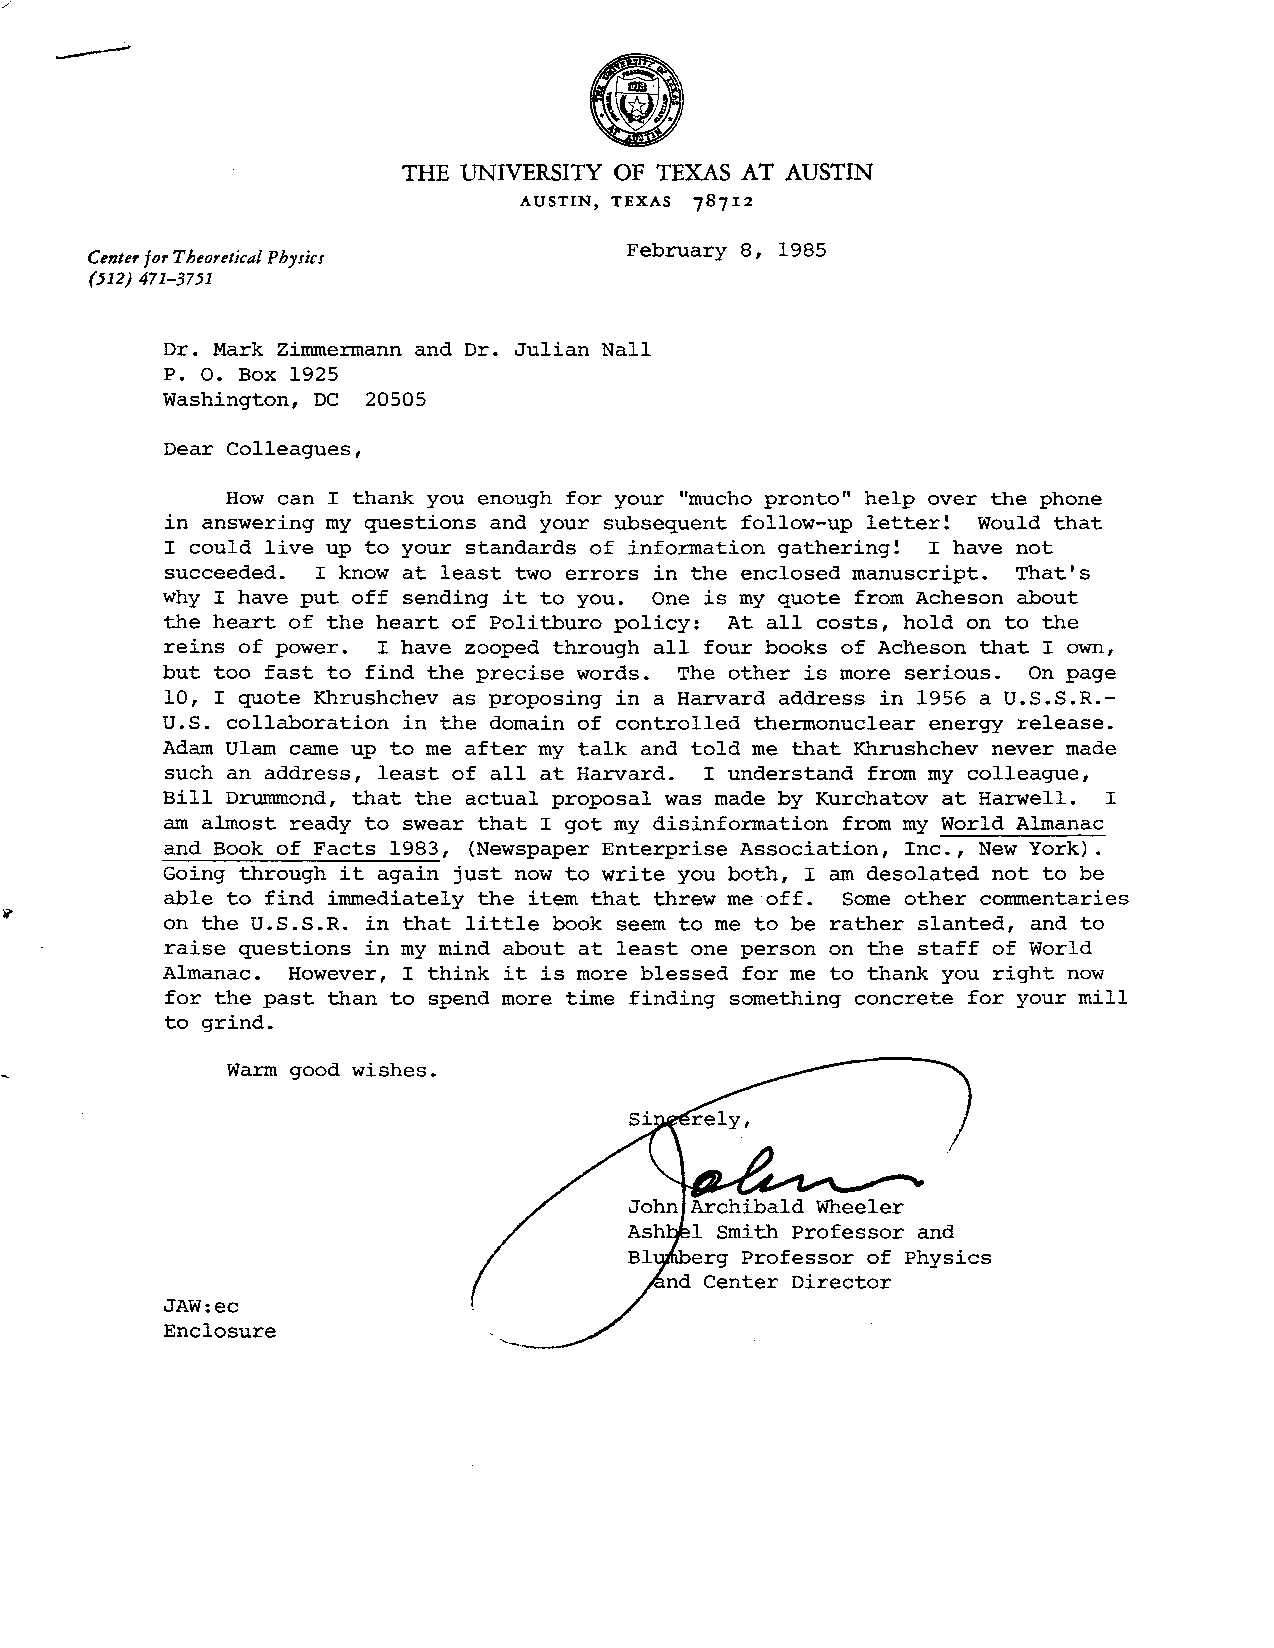 http://zhurnaly.com/documents/Wheeler_letter_1985.png